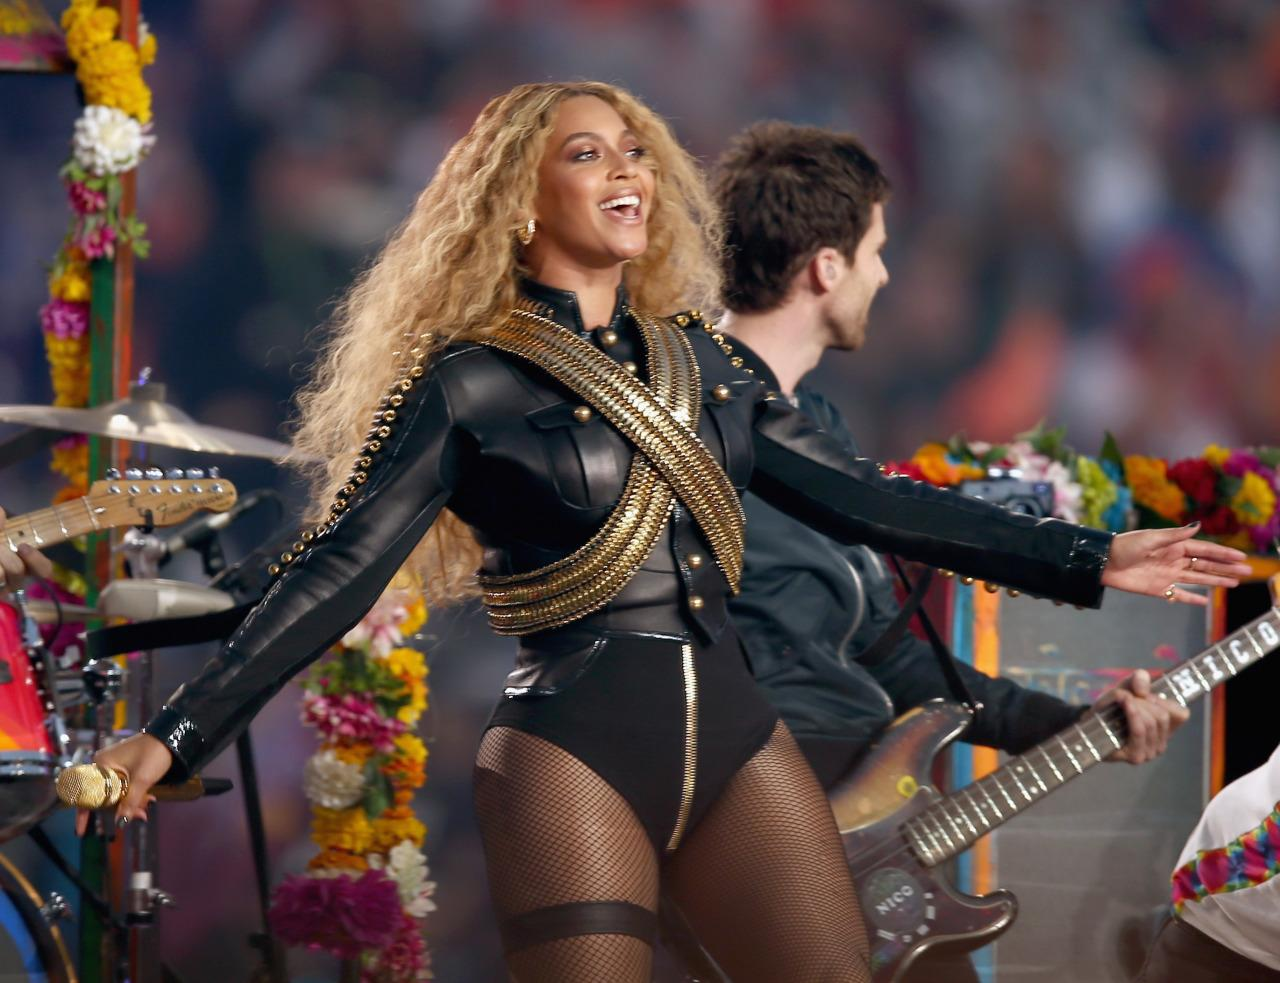 Beyoncé's 'Formation' Video Criticized as Anti-Police, Some Boycott Super Bowl Performance in Protest